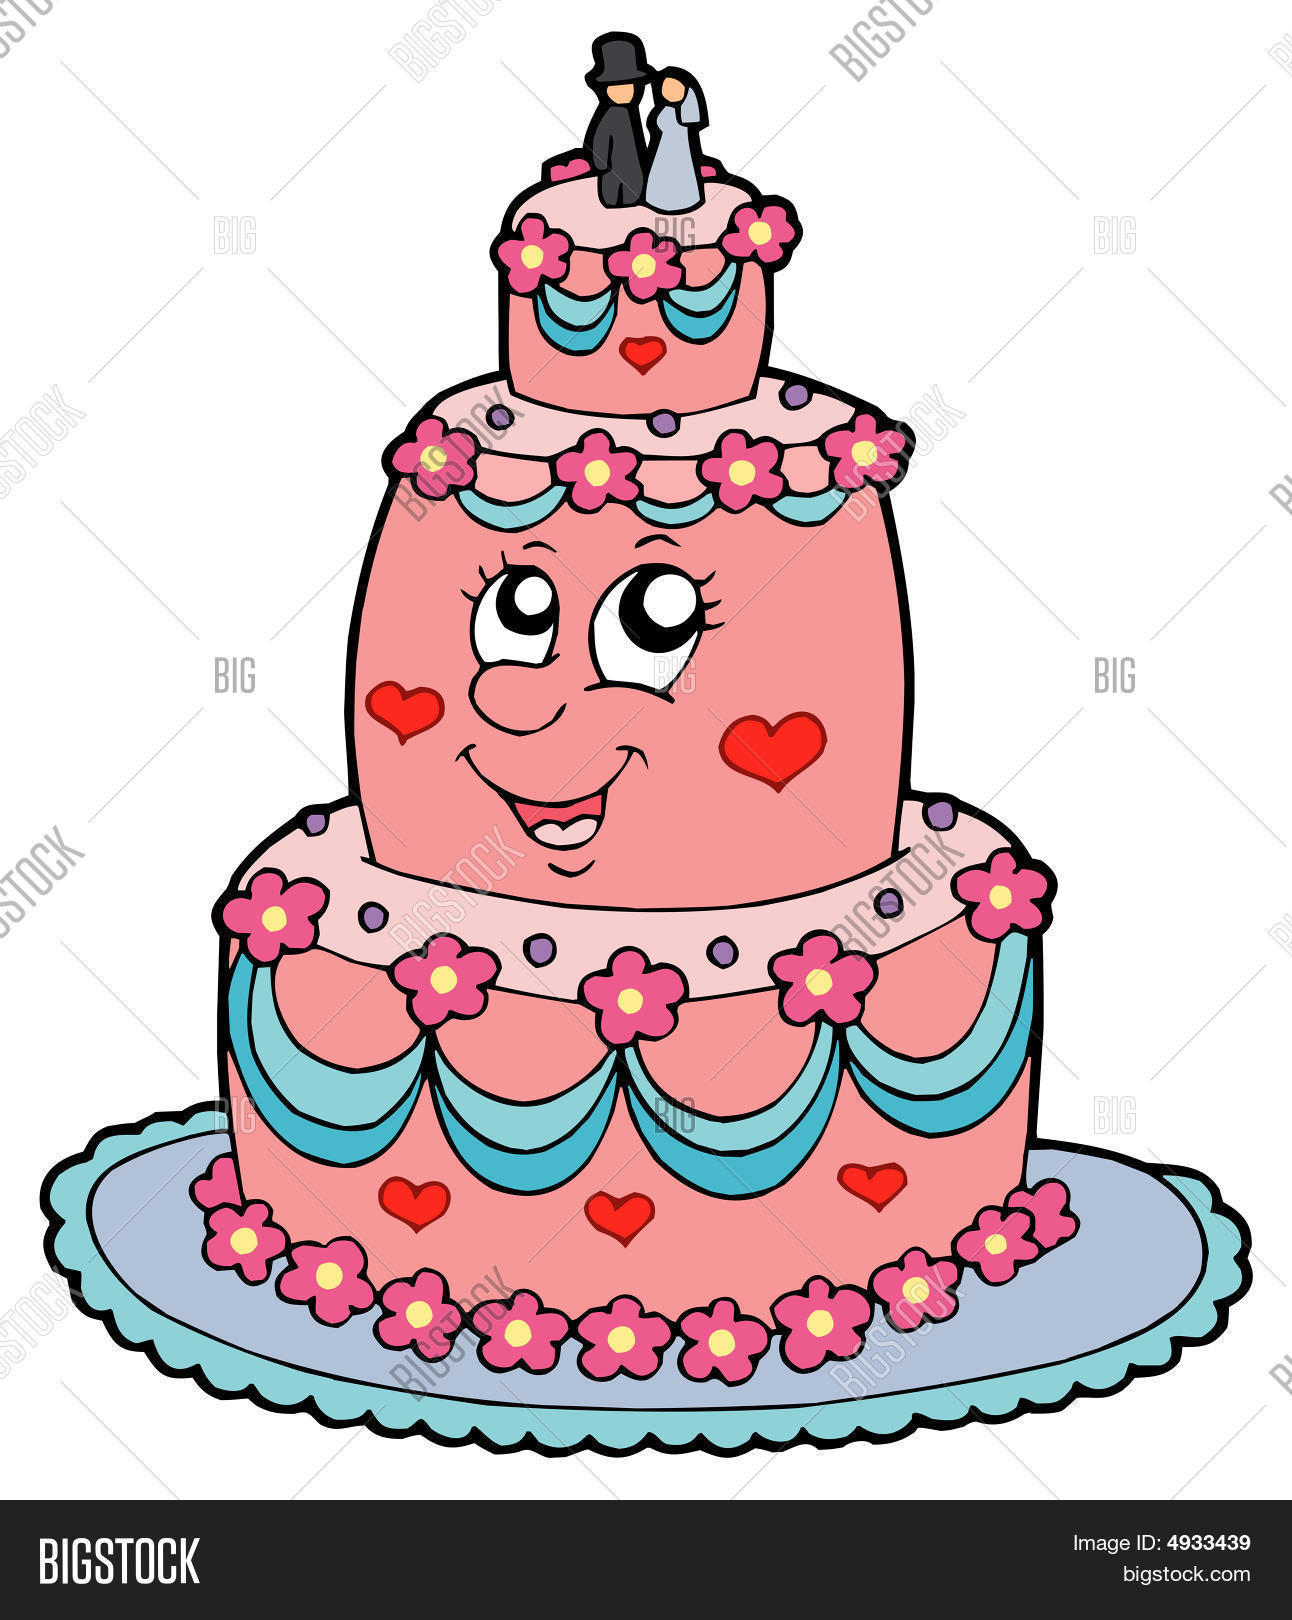 cartoon picture of a wedding cake wedding cake vector amp photo bigstock 12418